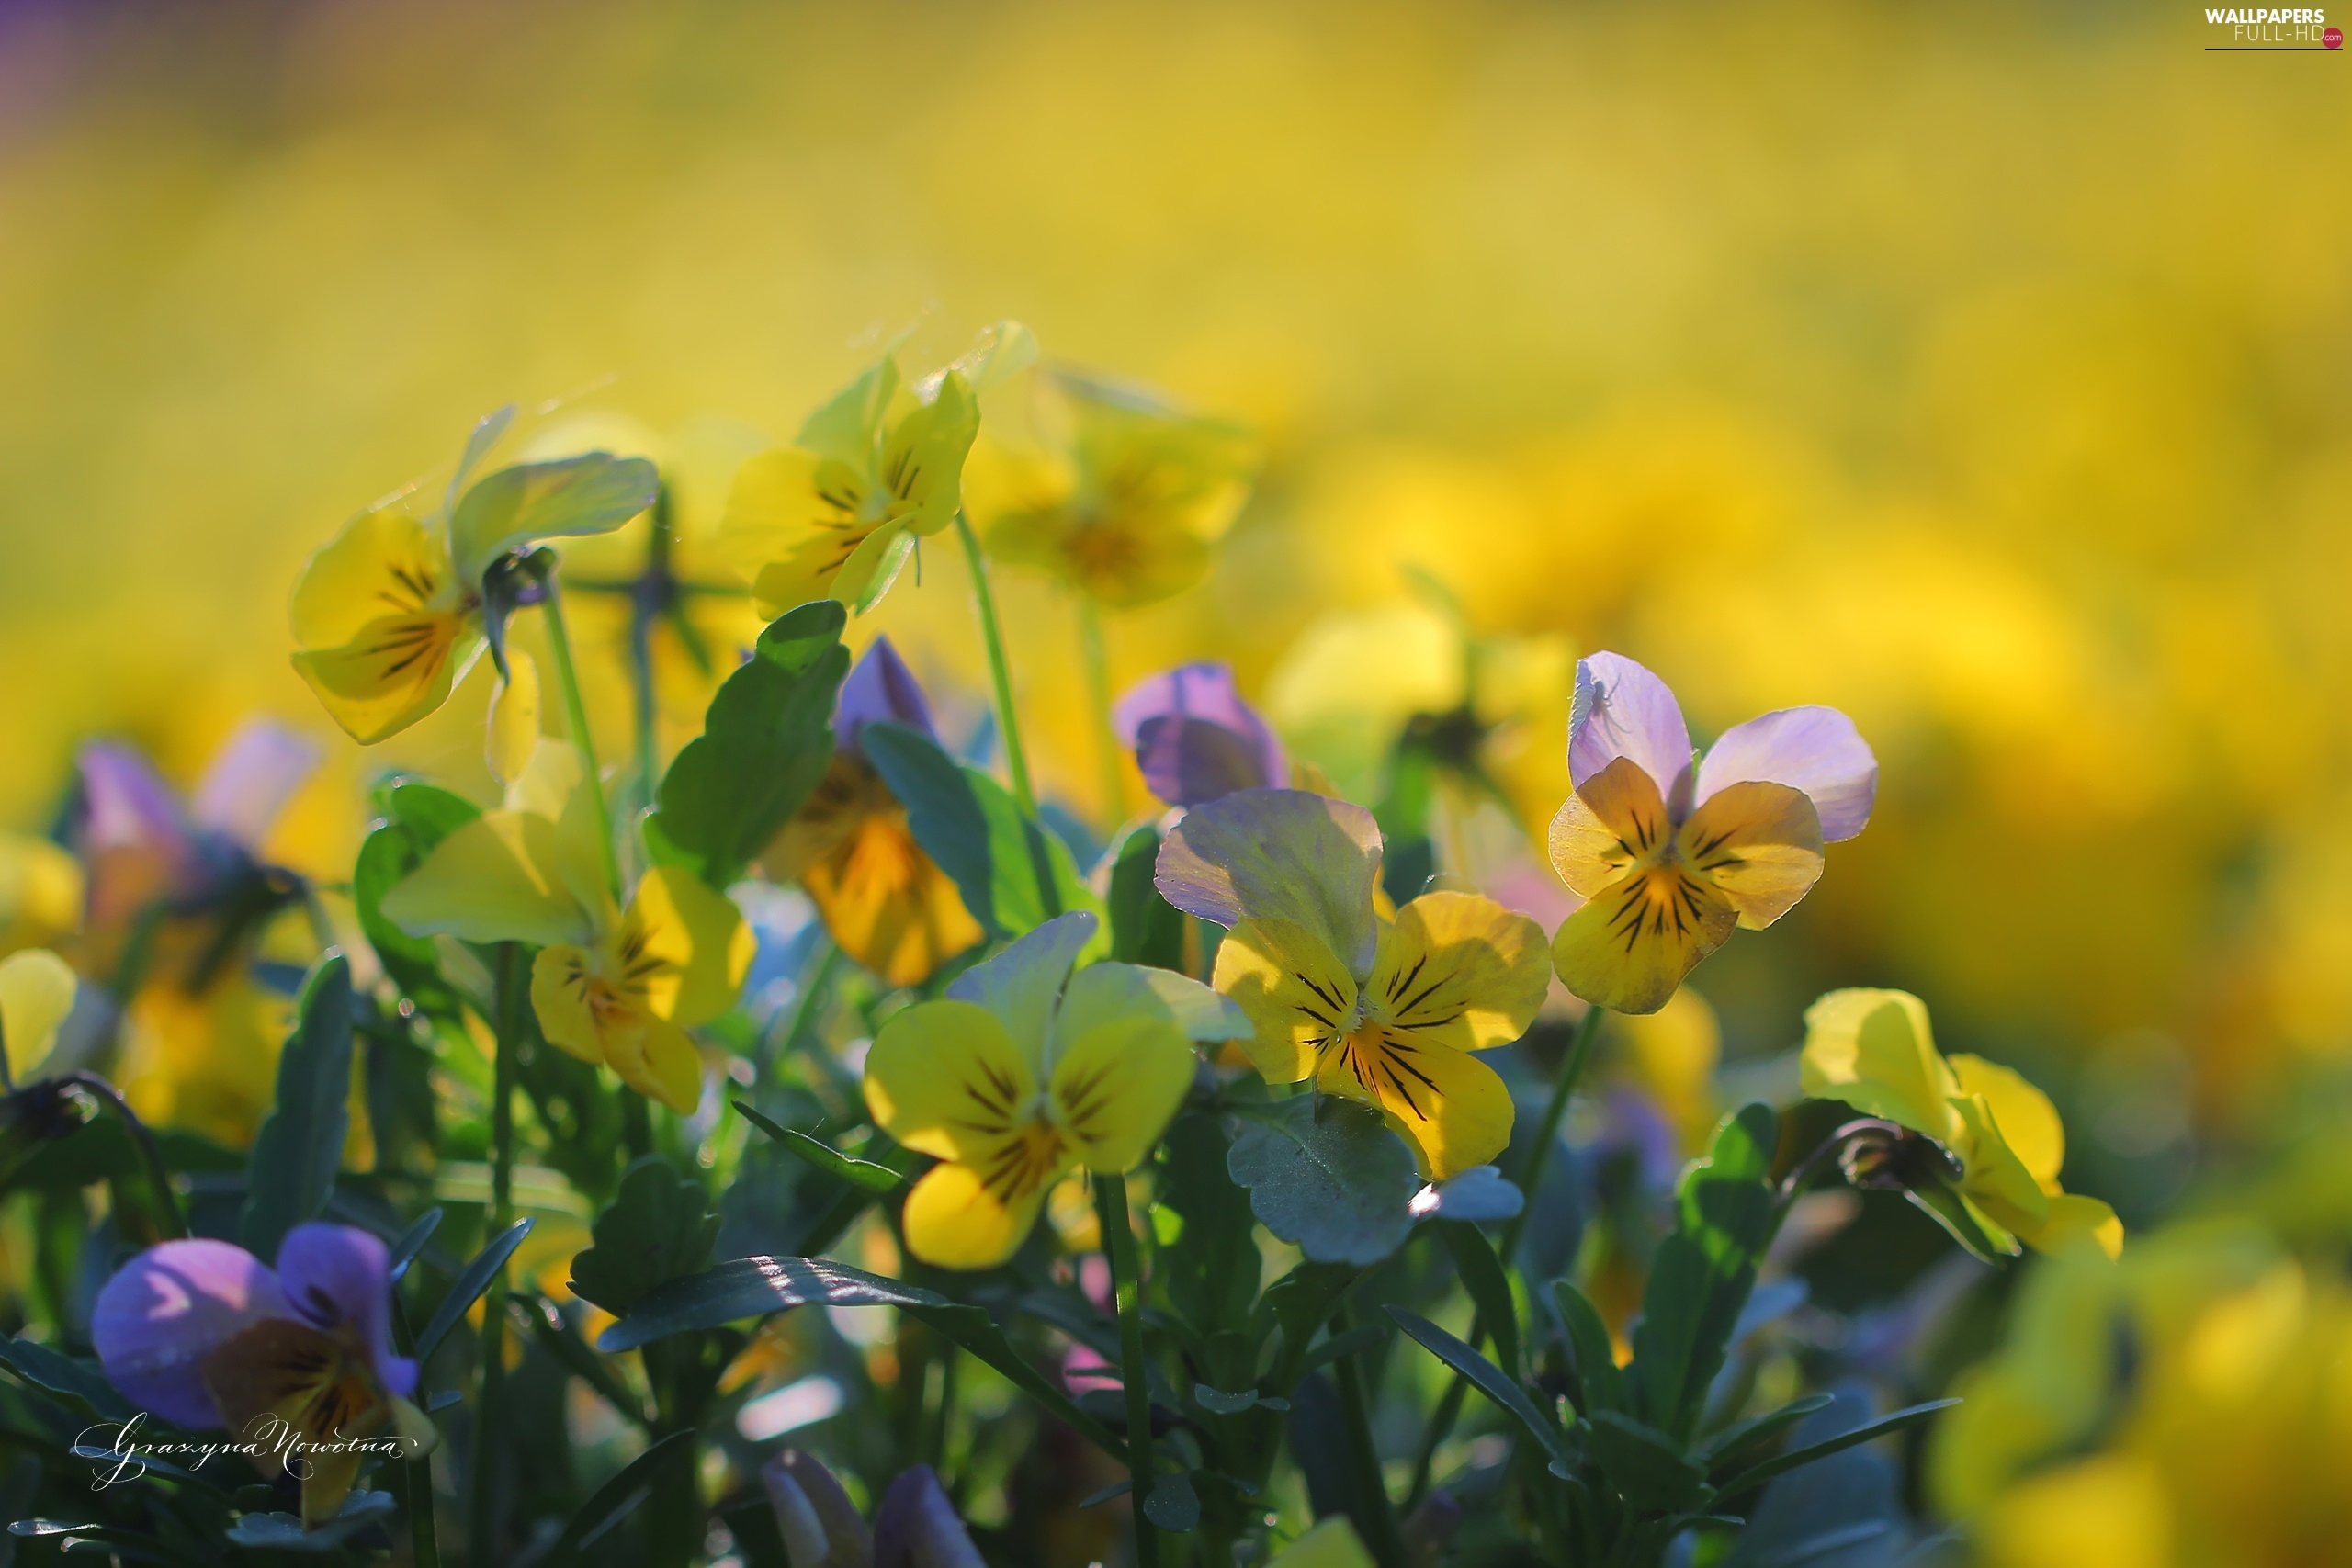 Flowers, pansies, Yellow, purple